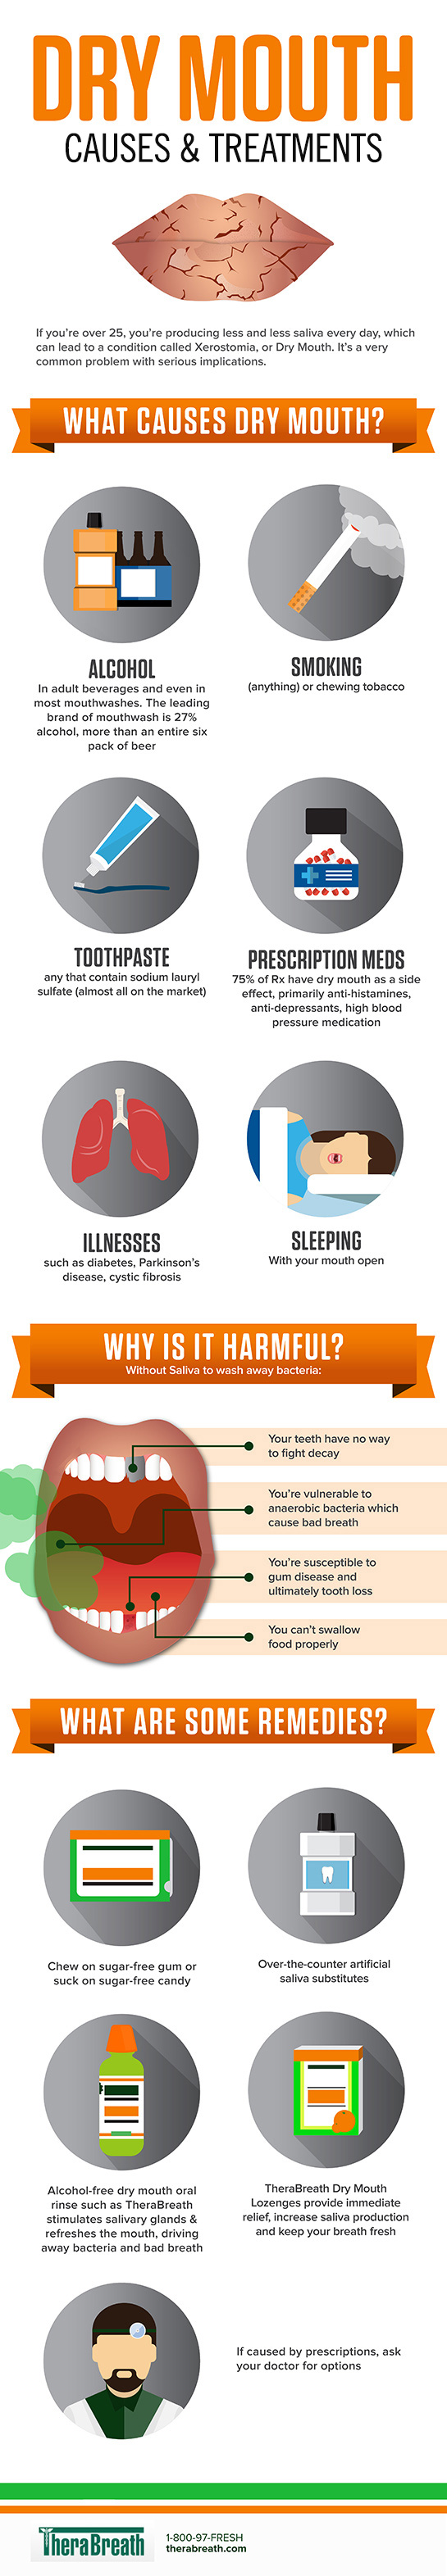 Why Your Mouth Is Getting Drier Every Day - Infographic